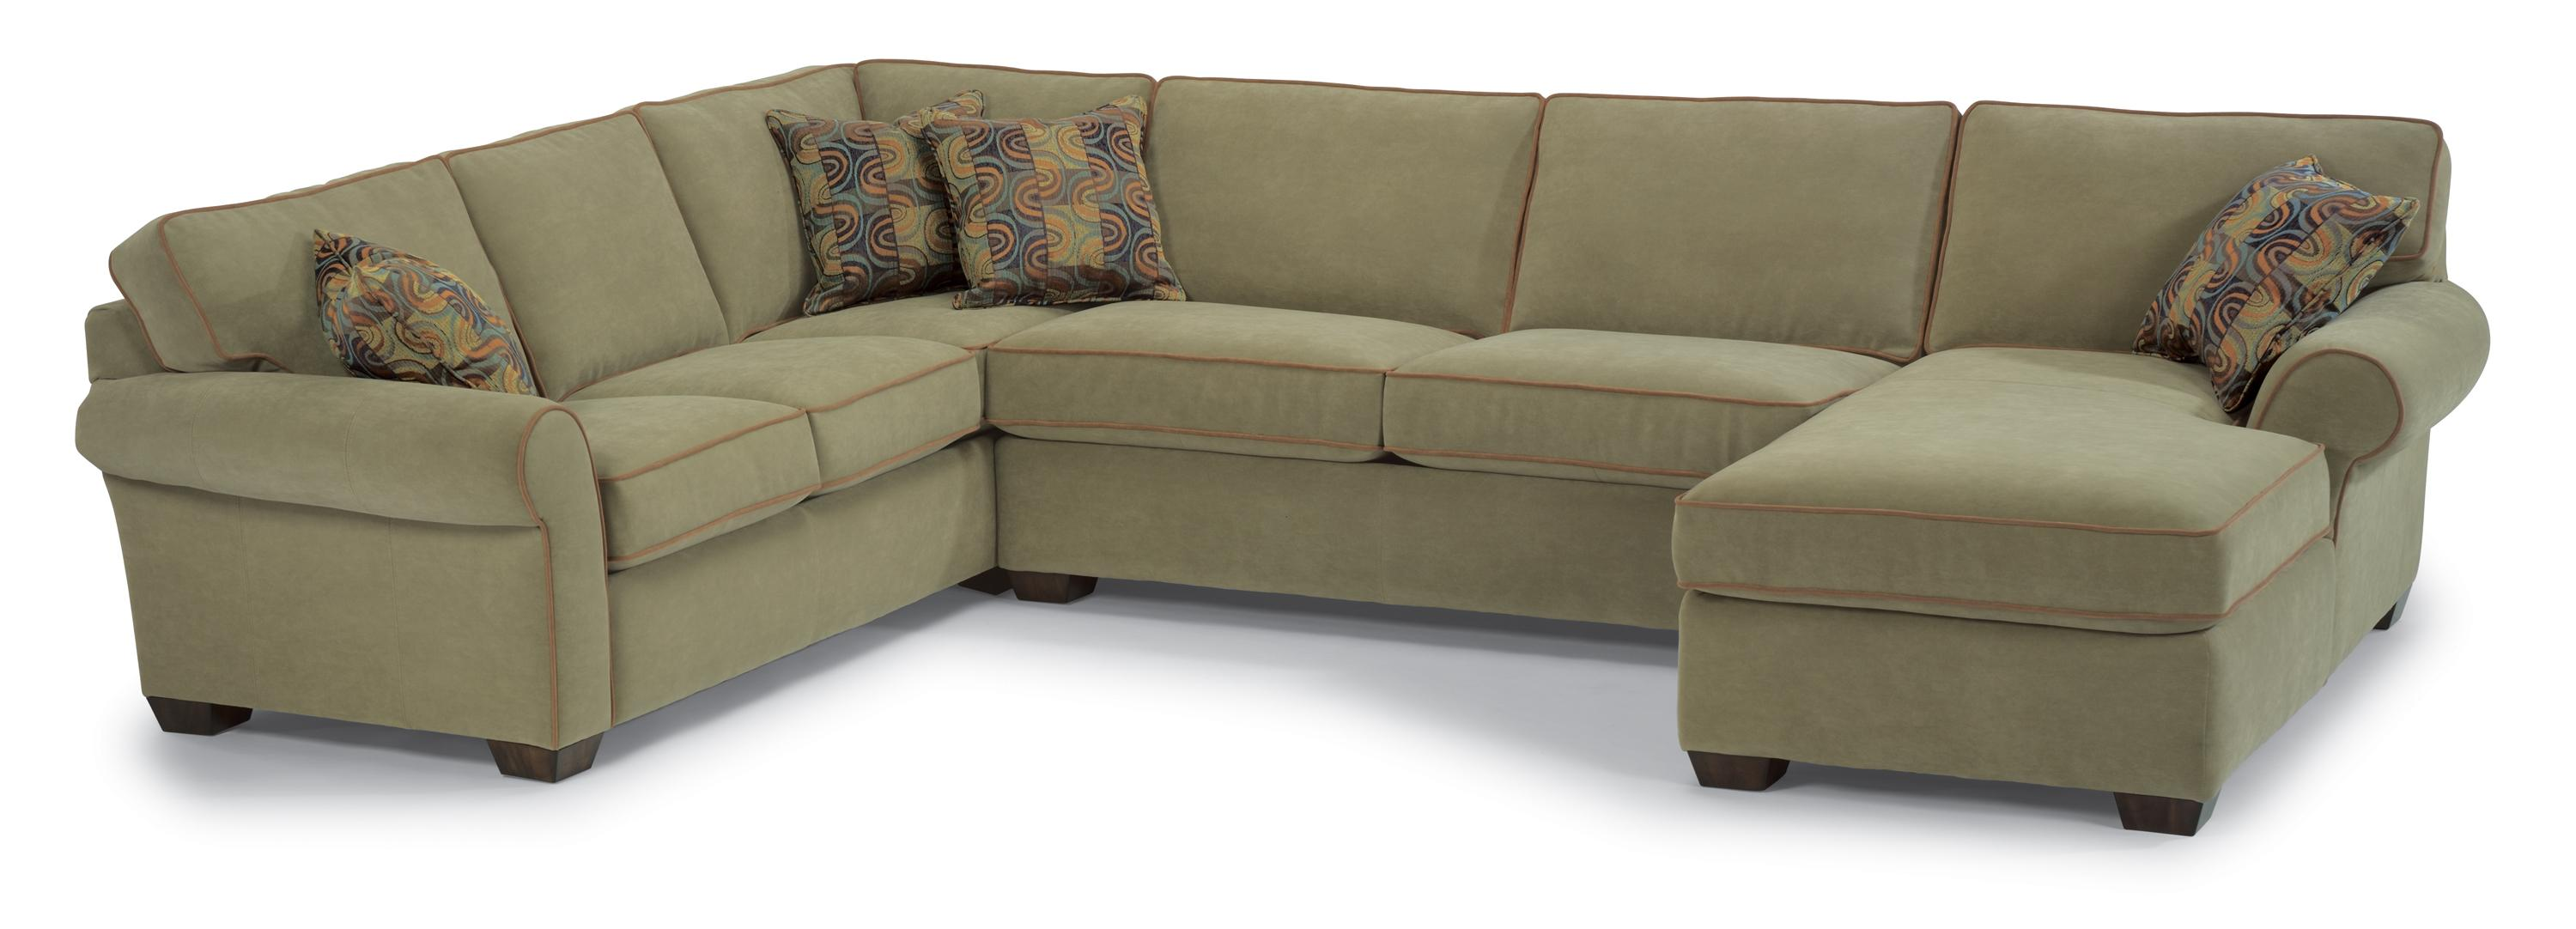 Flexsteel Vail Three Piece Sectional with Chaise Dunk & Bright